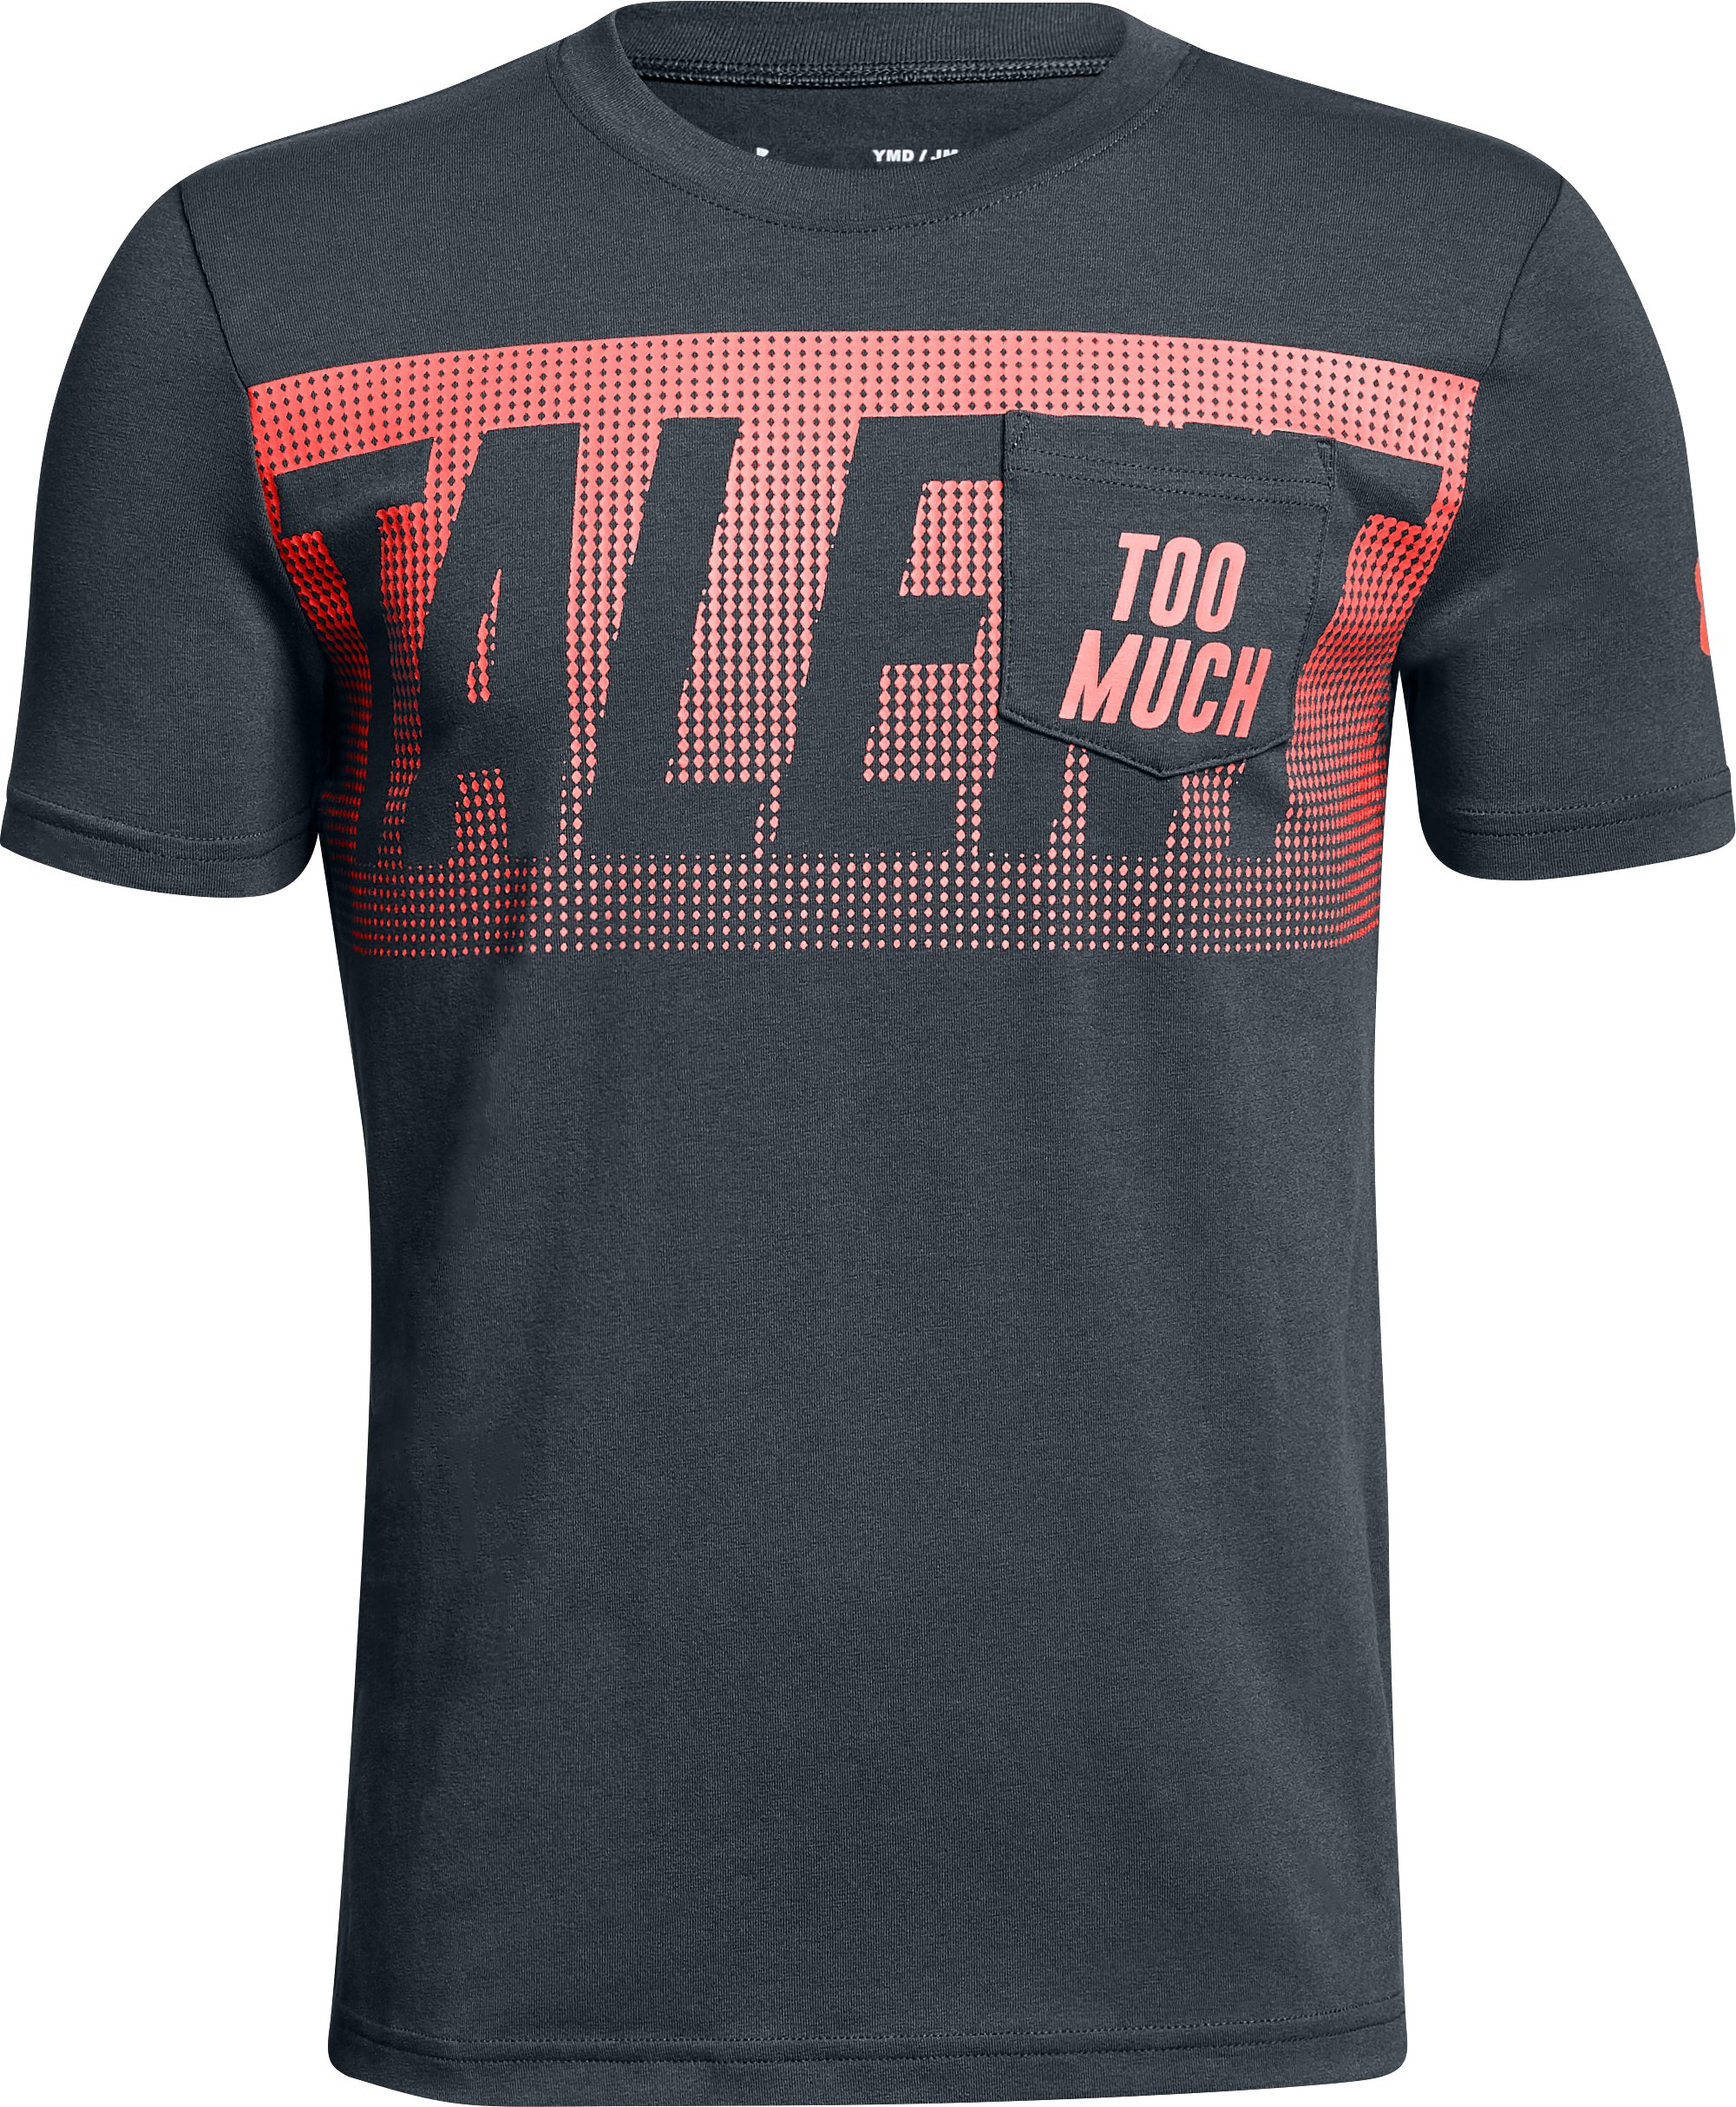 Boys' UA Too Much Talent T-Shirt, STEALTH GRAY, undefined